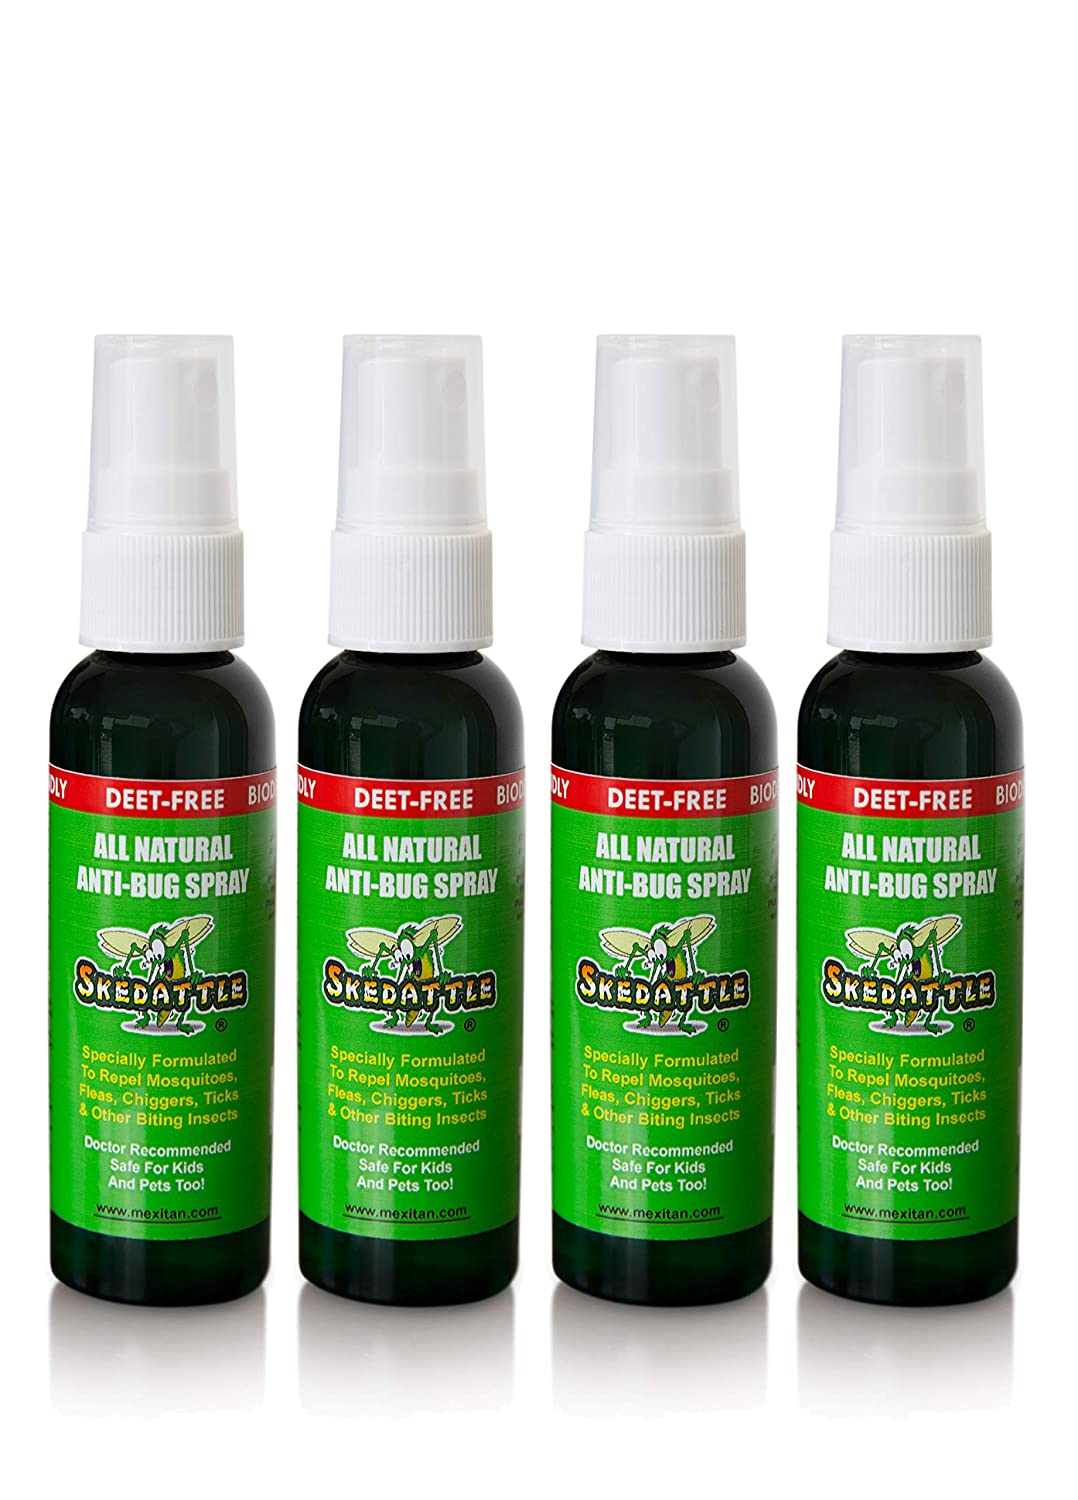 Skedattle - Natural Bug Spray | Non-Toxic, Chemical-Free Insect Repellent with Lemongrass and Essential Oils